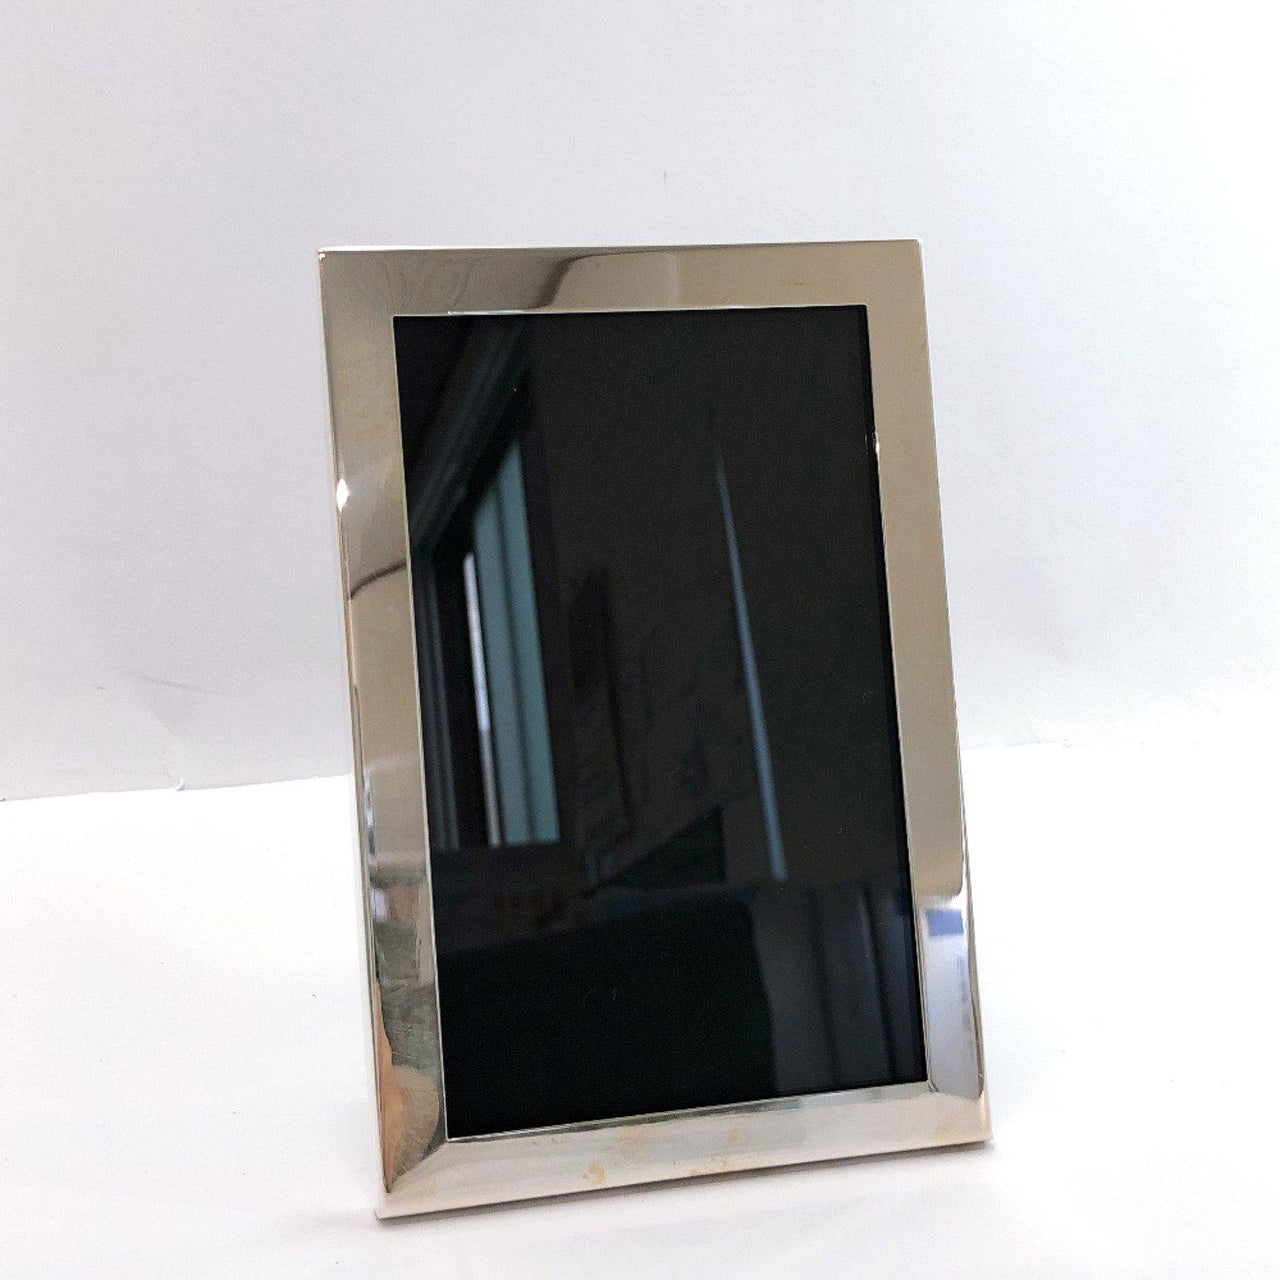 TIFFANY&Co. Other accessories Photo frame Silver925 Silver unisex Used